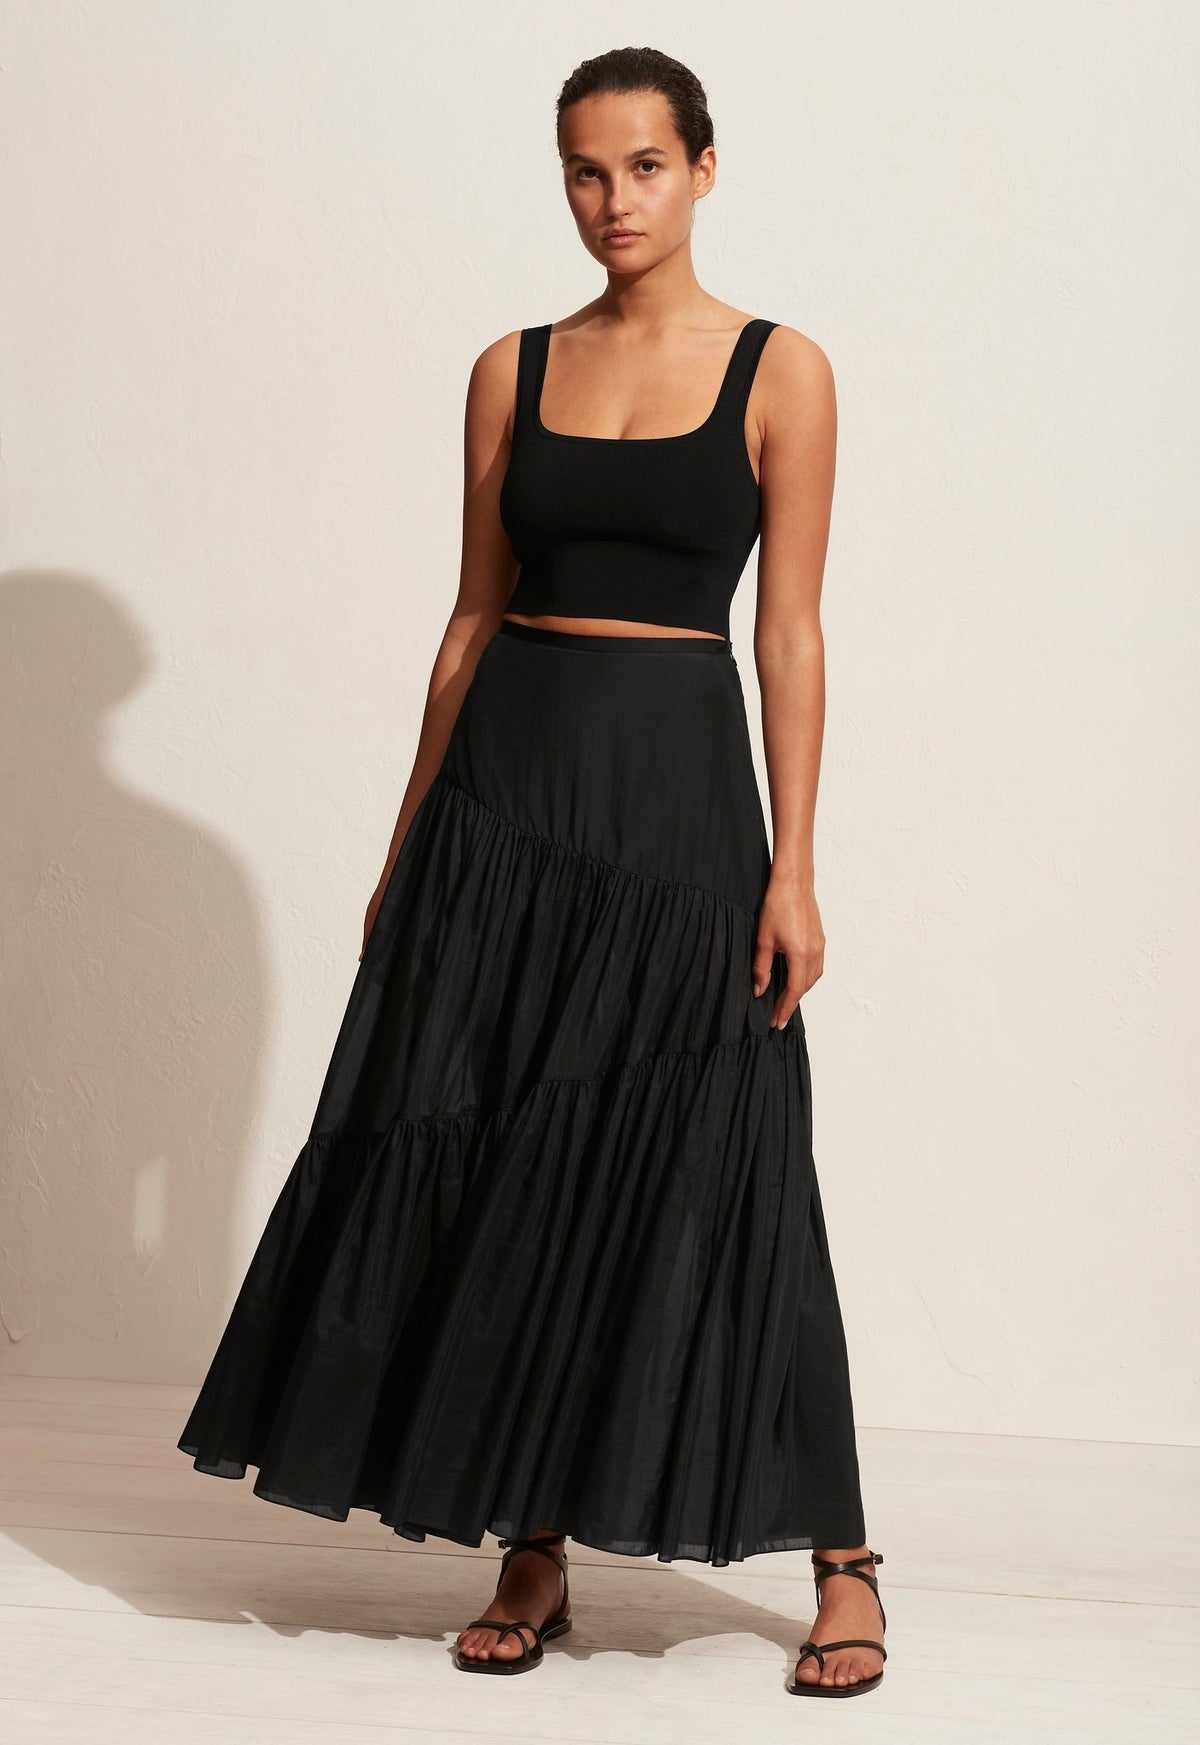 The Asymmetric Tiered Skirt